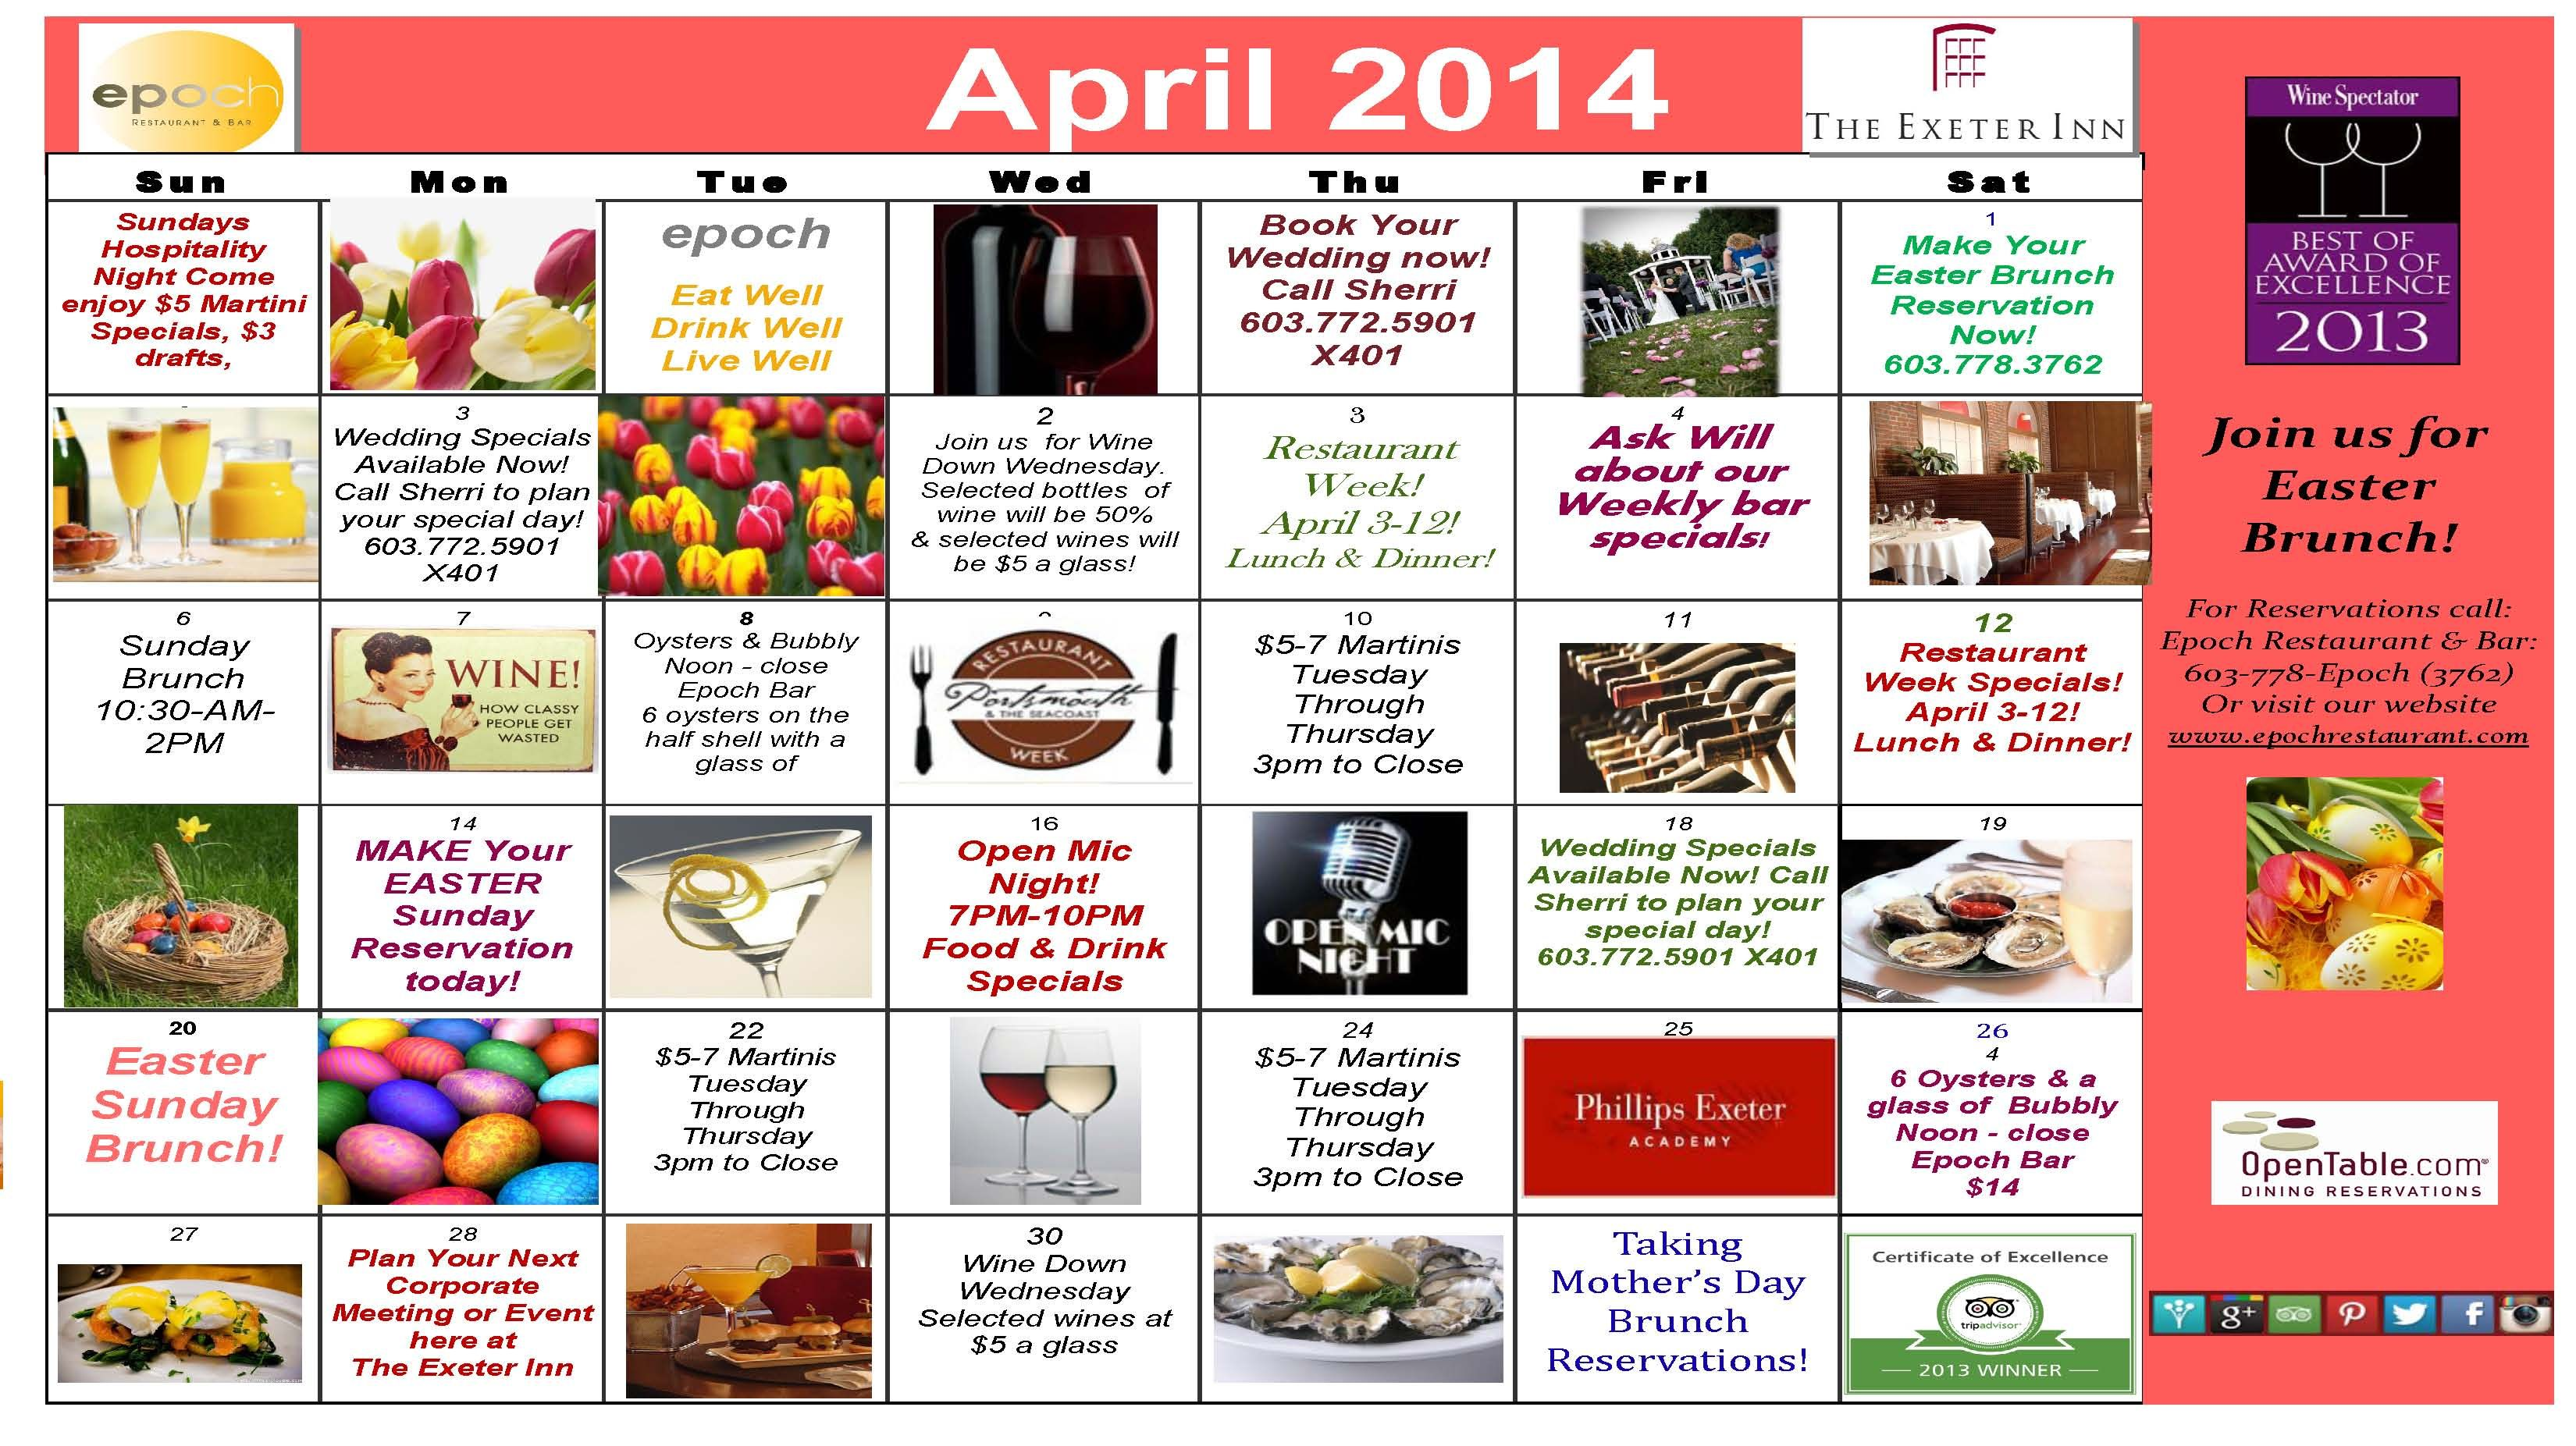 Here Is Our April 2014 Monthly Calendar Of Events For The Exeter